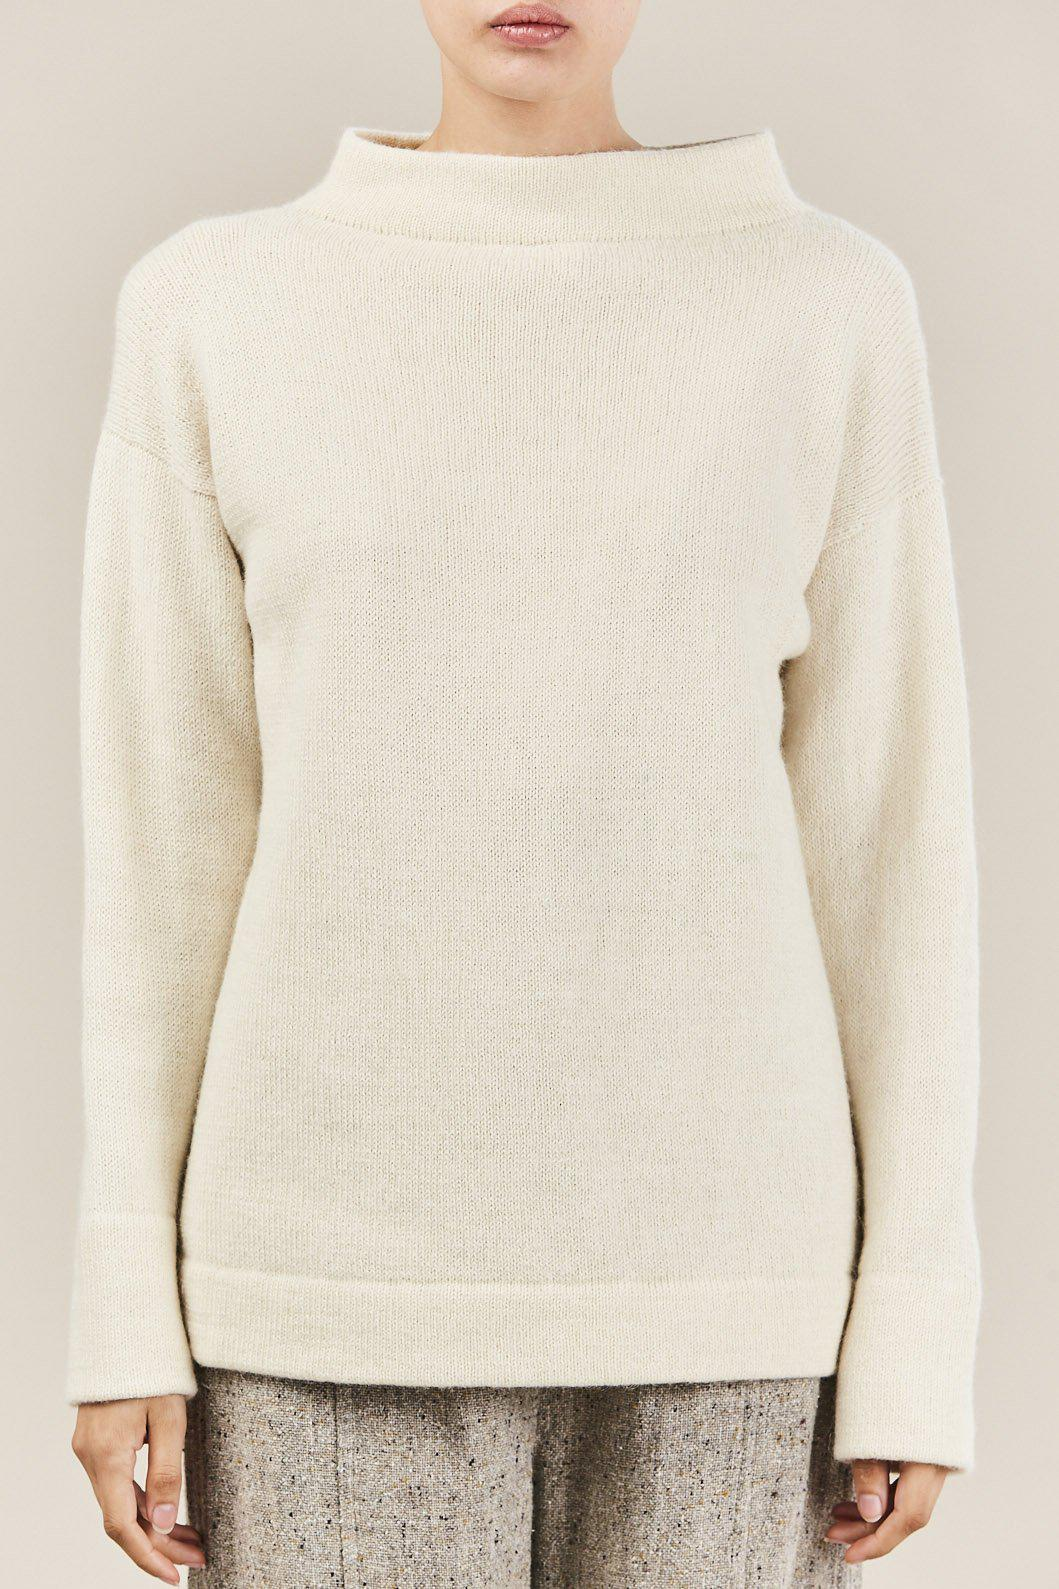 19b76ec9a69 Lauren Manoogian Mock Pullover Sweater in Natural - Lyst